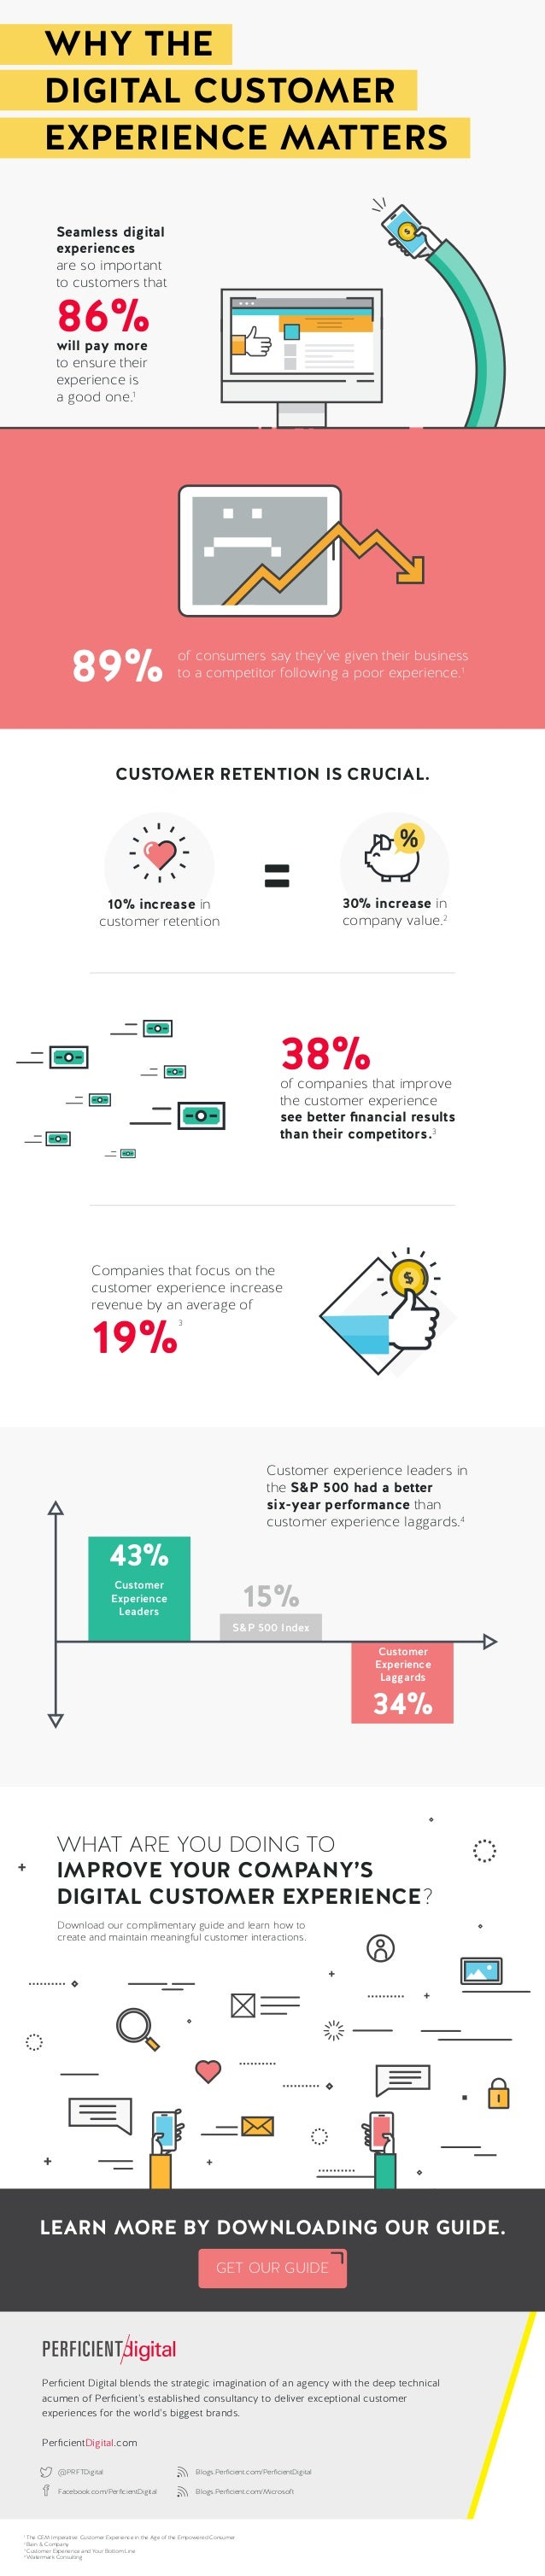 1 The CEM Imperative: Customer Experience in the Age of the Empowered Consumer 2 Bain & Company 3 Customer Experience and ...